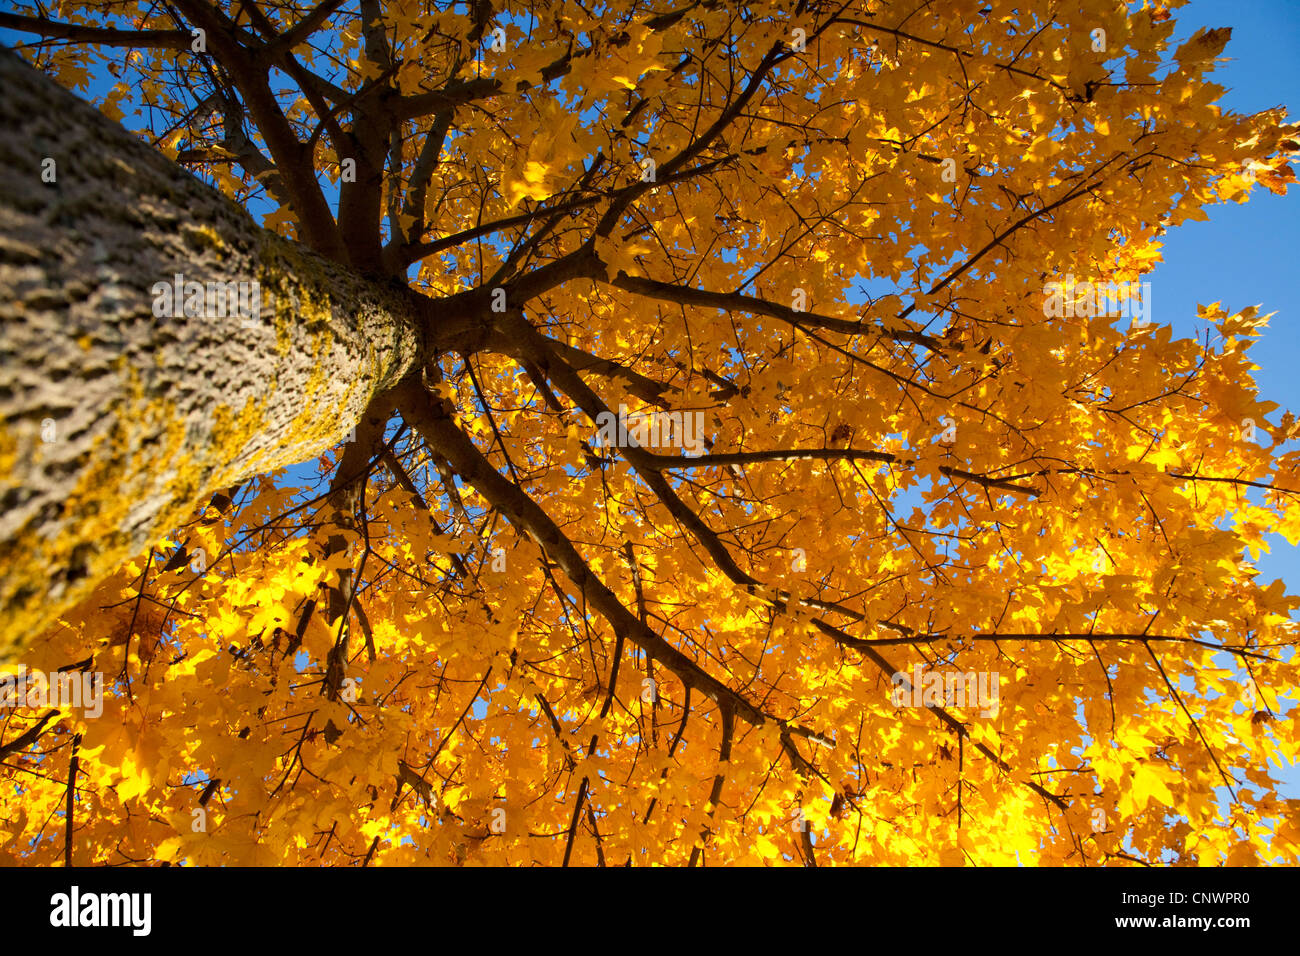 Norway maple (Acer platanoides), view from below into the tree top, Germany, Bavaria - Stock Image